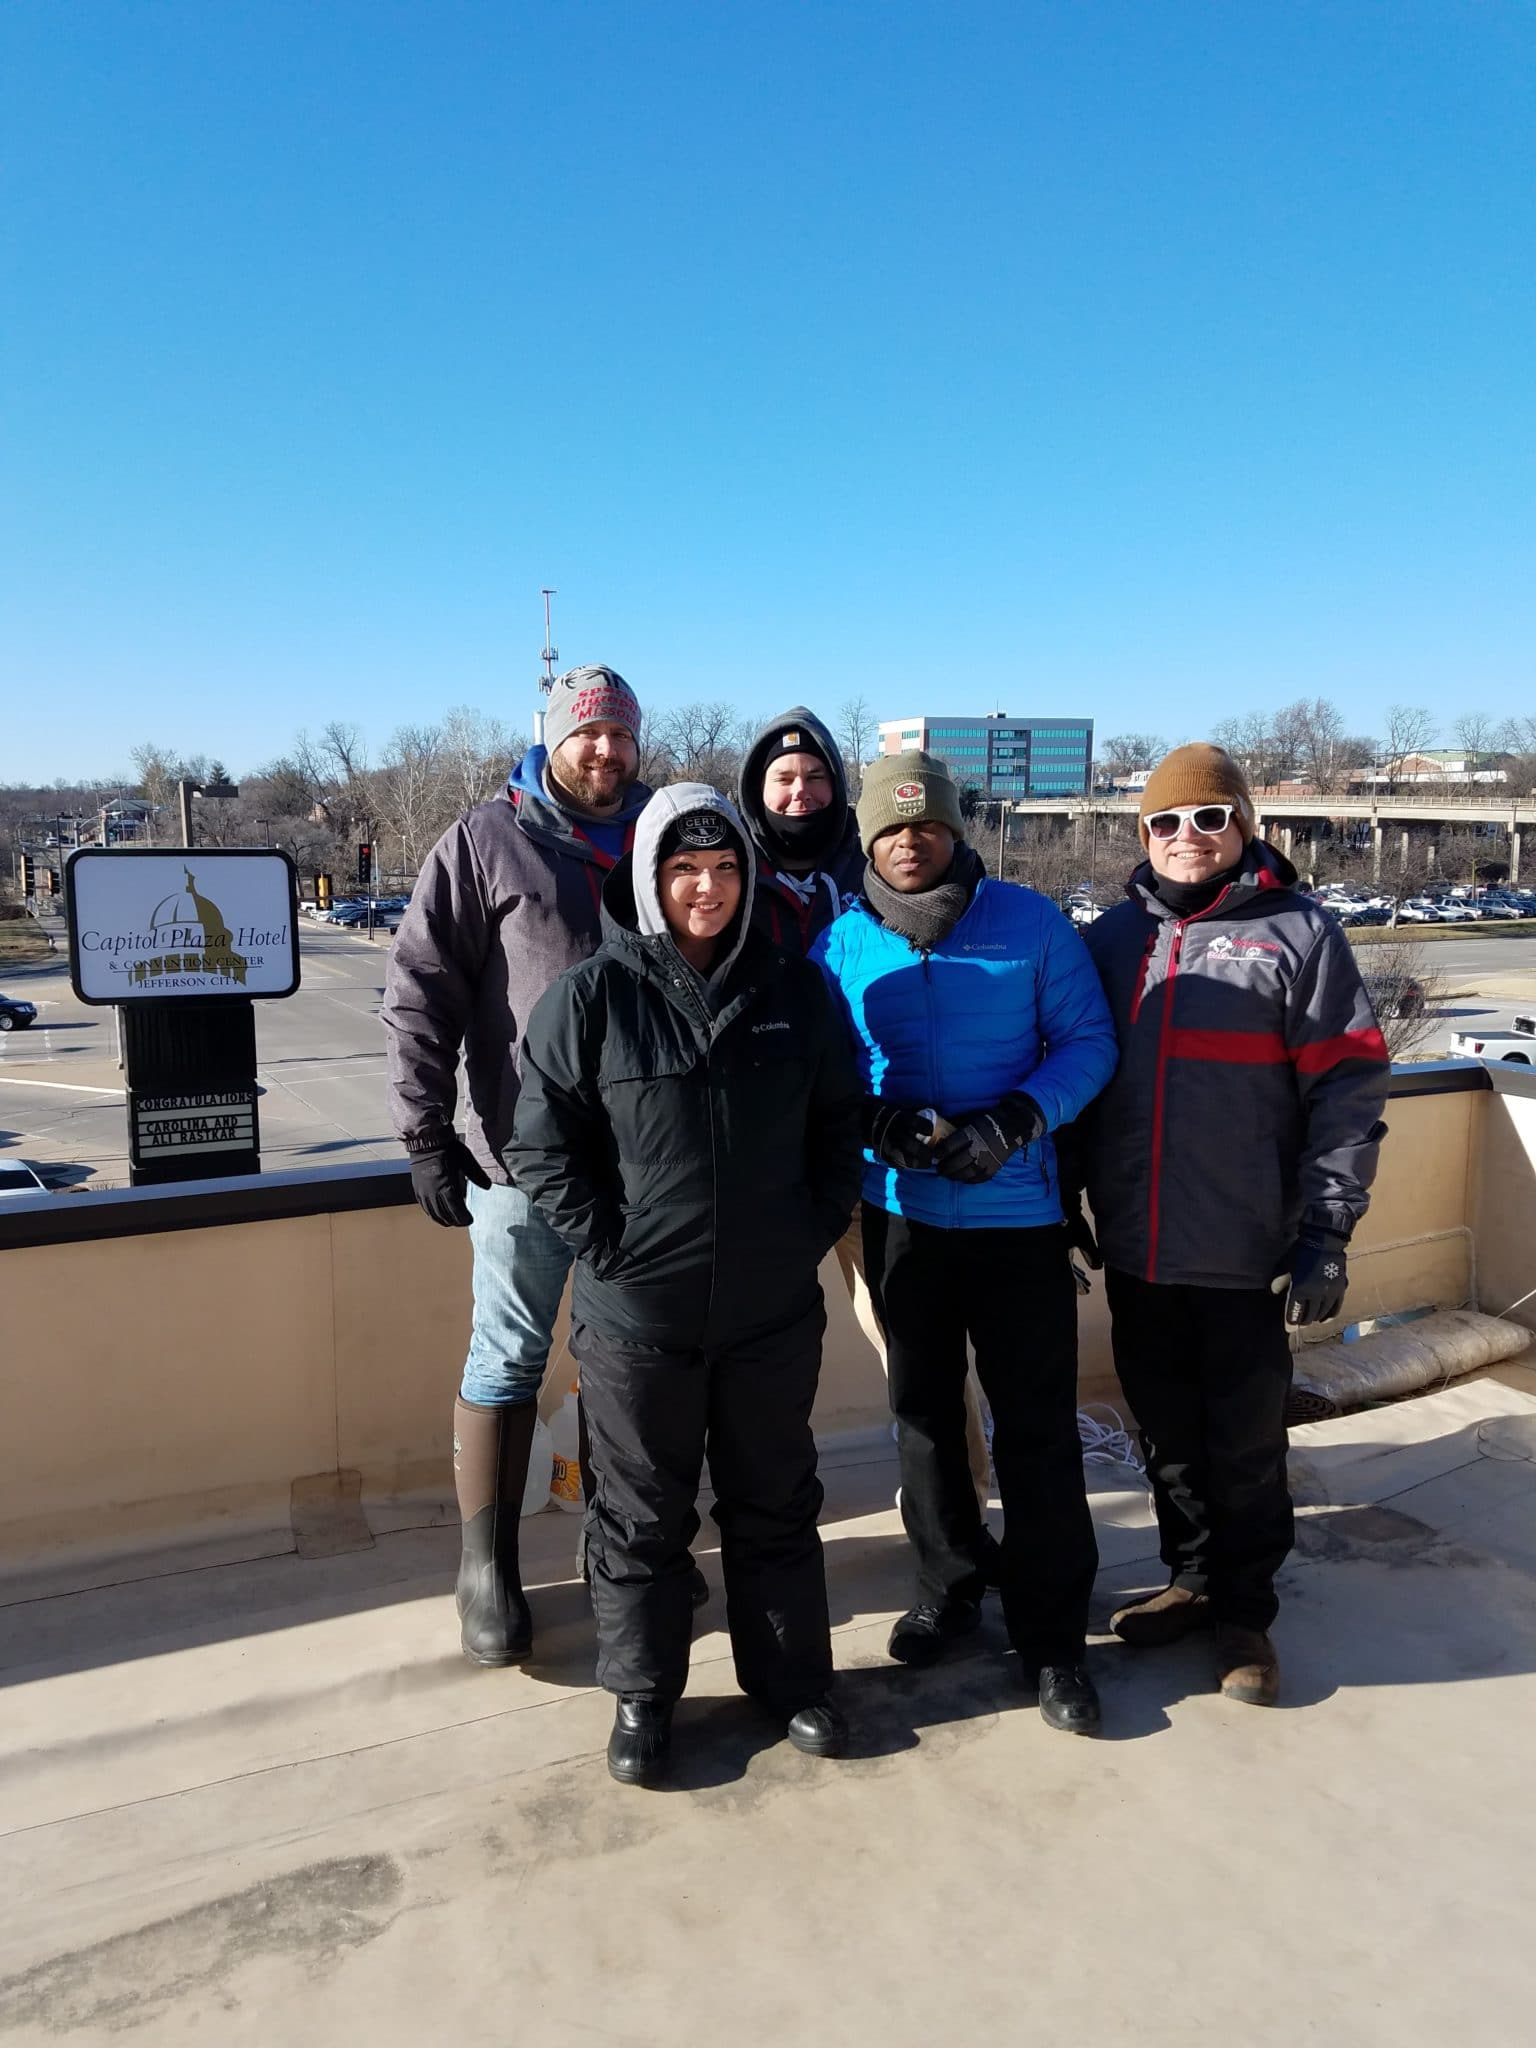 A group of people bundled up in winter clothes stand on top of a hotel roof